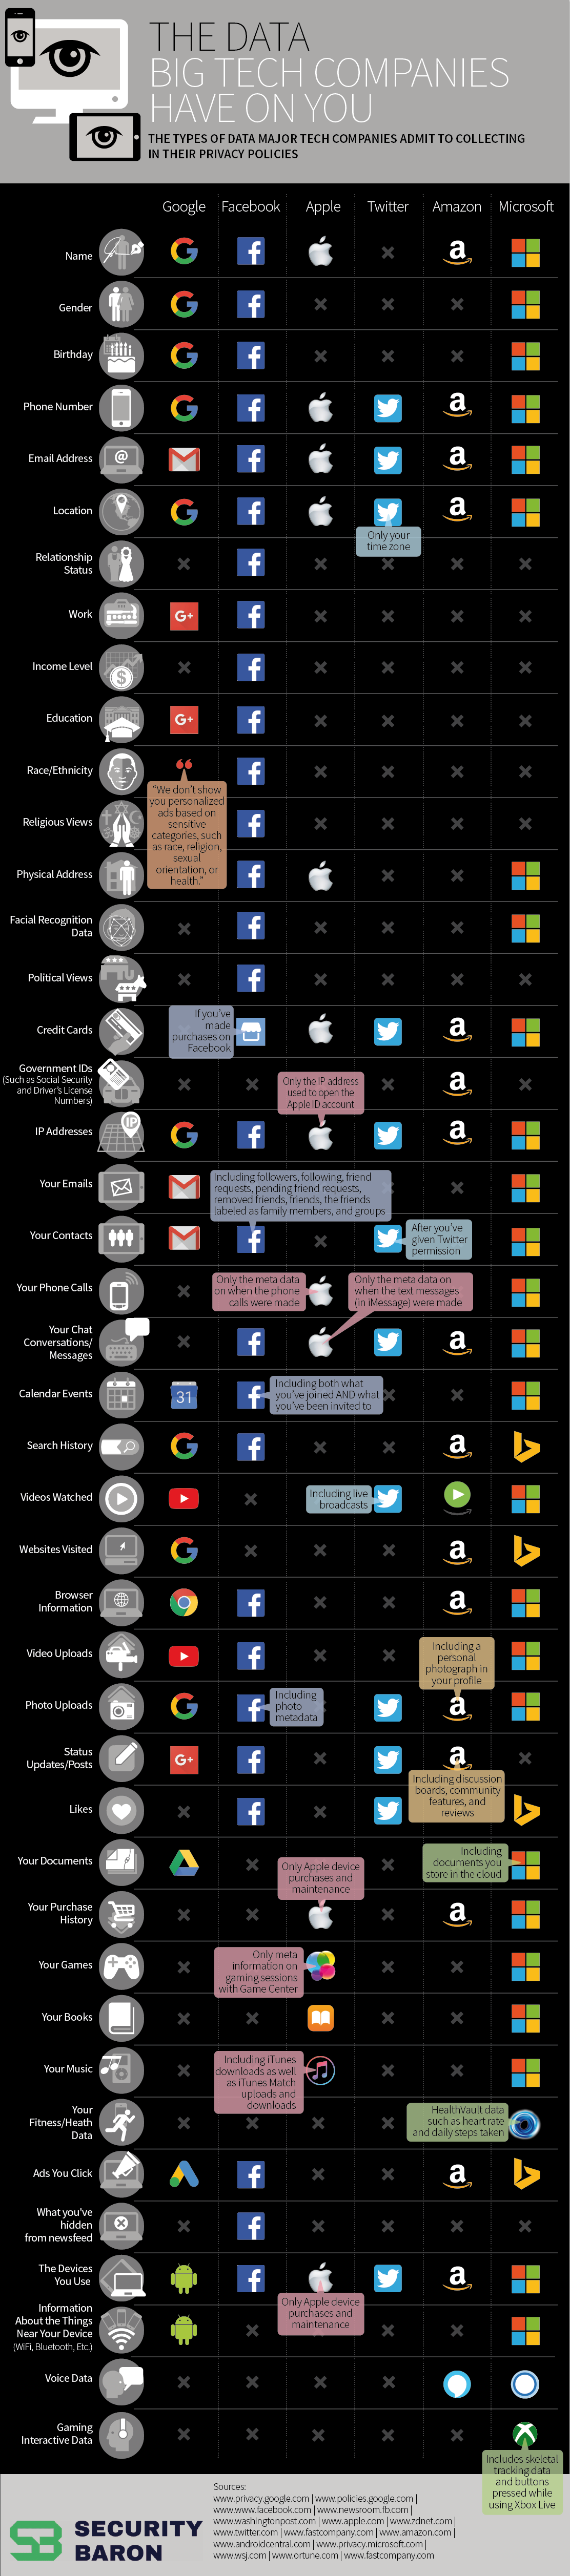 The Data Big Tech Companies Have On You (Or, At Least, What They Admit To)